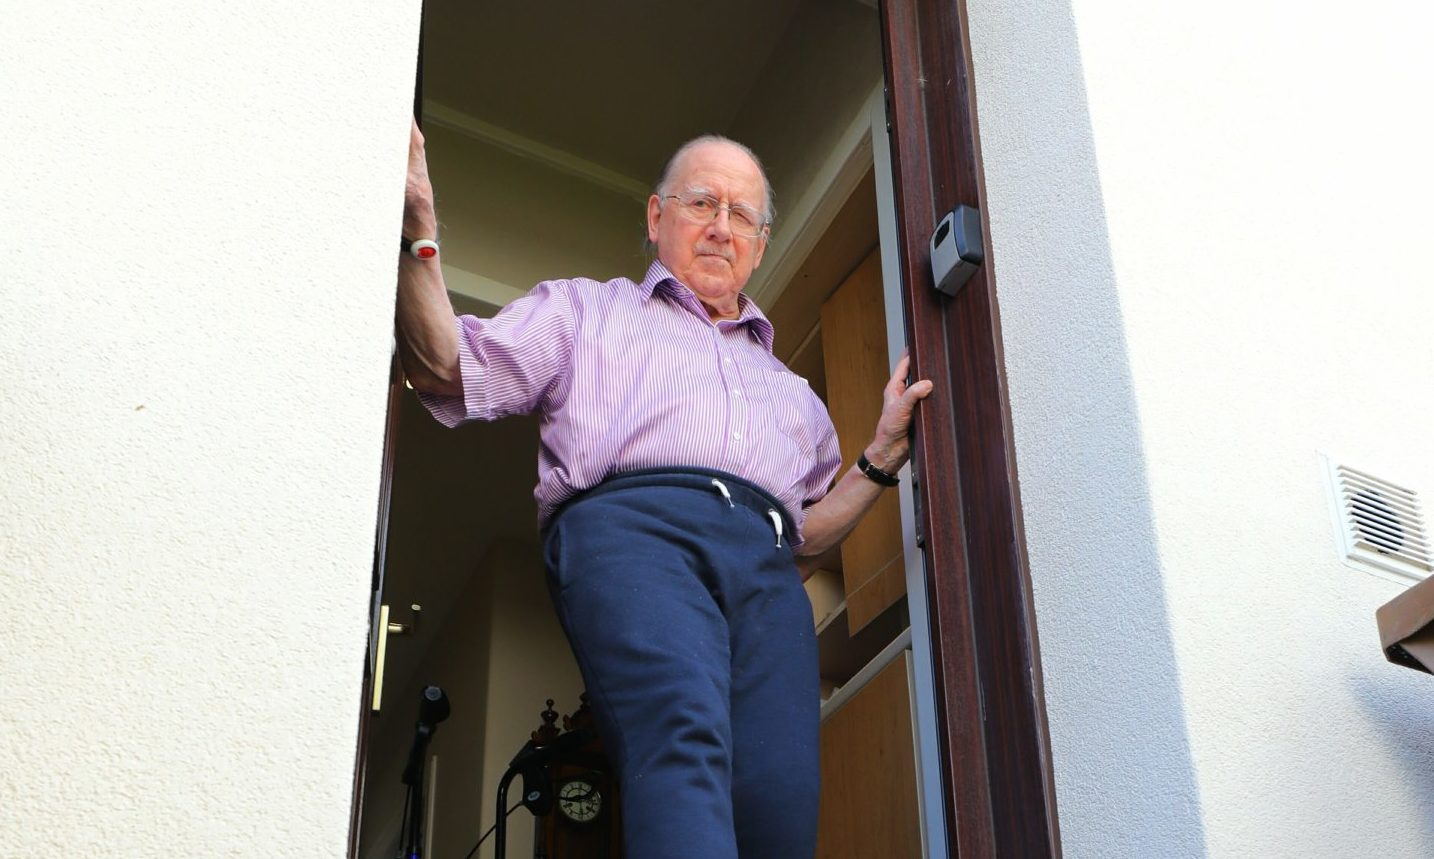 82 year old Robert Milroy at the door of his house on Arbroath Road in Dundee where he is complaining about the lack of a temporary ramp, which has meant he has been housebound since November.